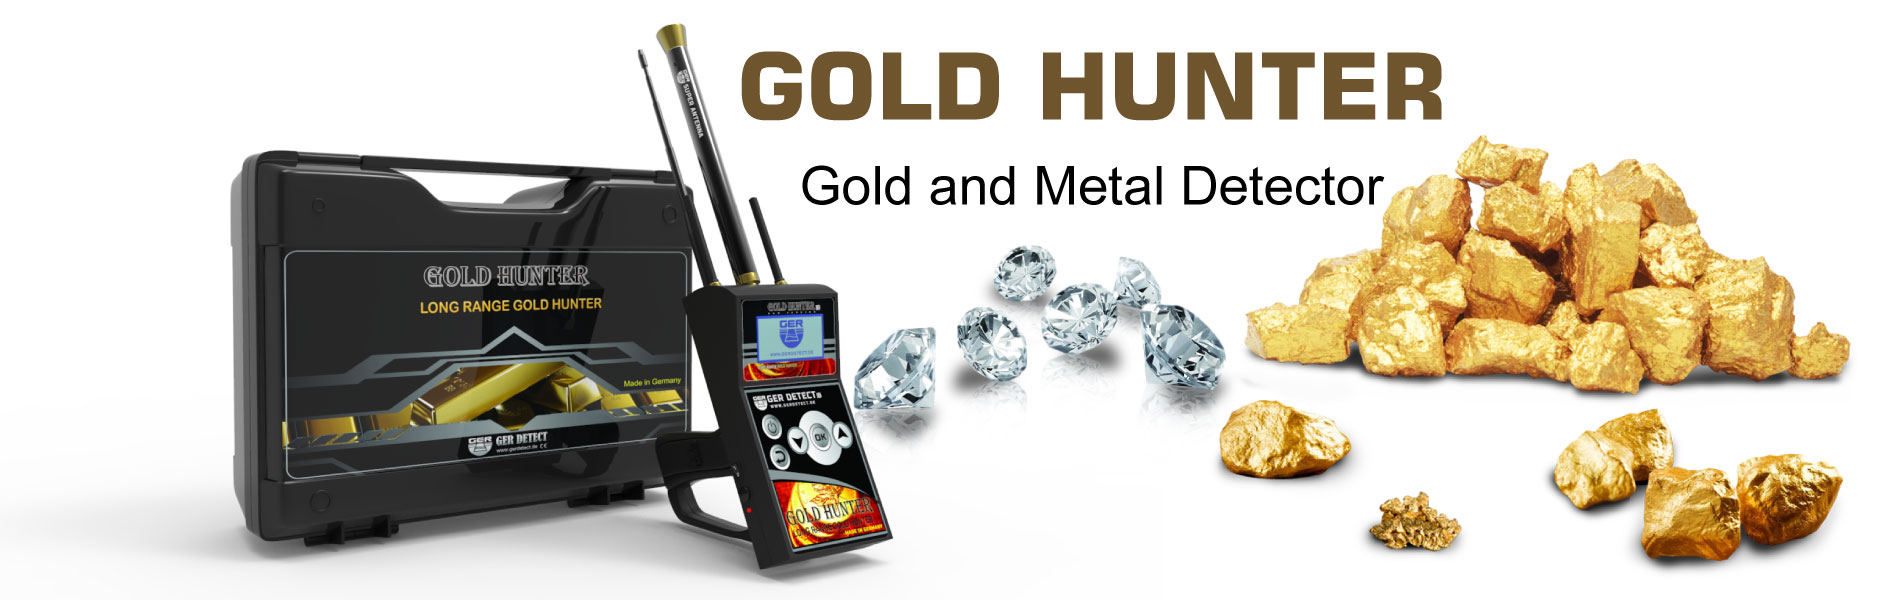 gold hunter device with long range system